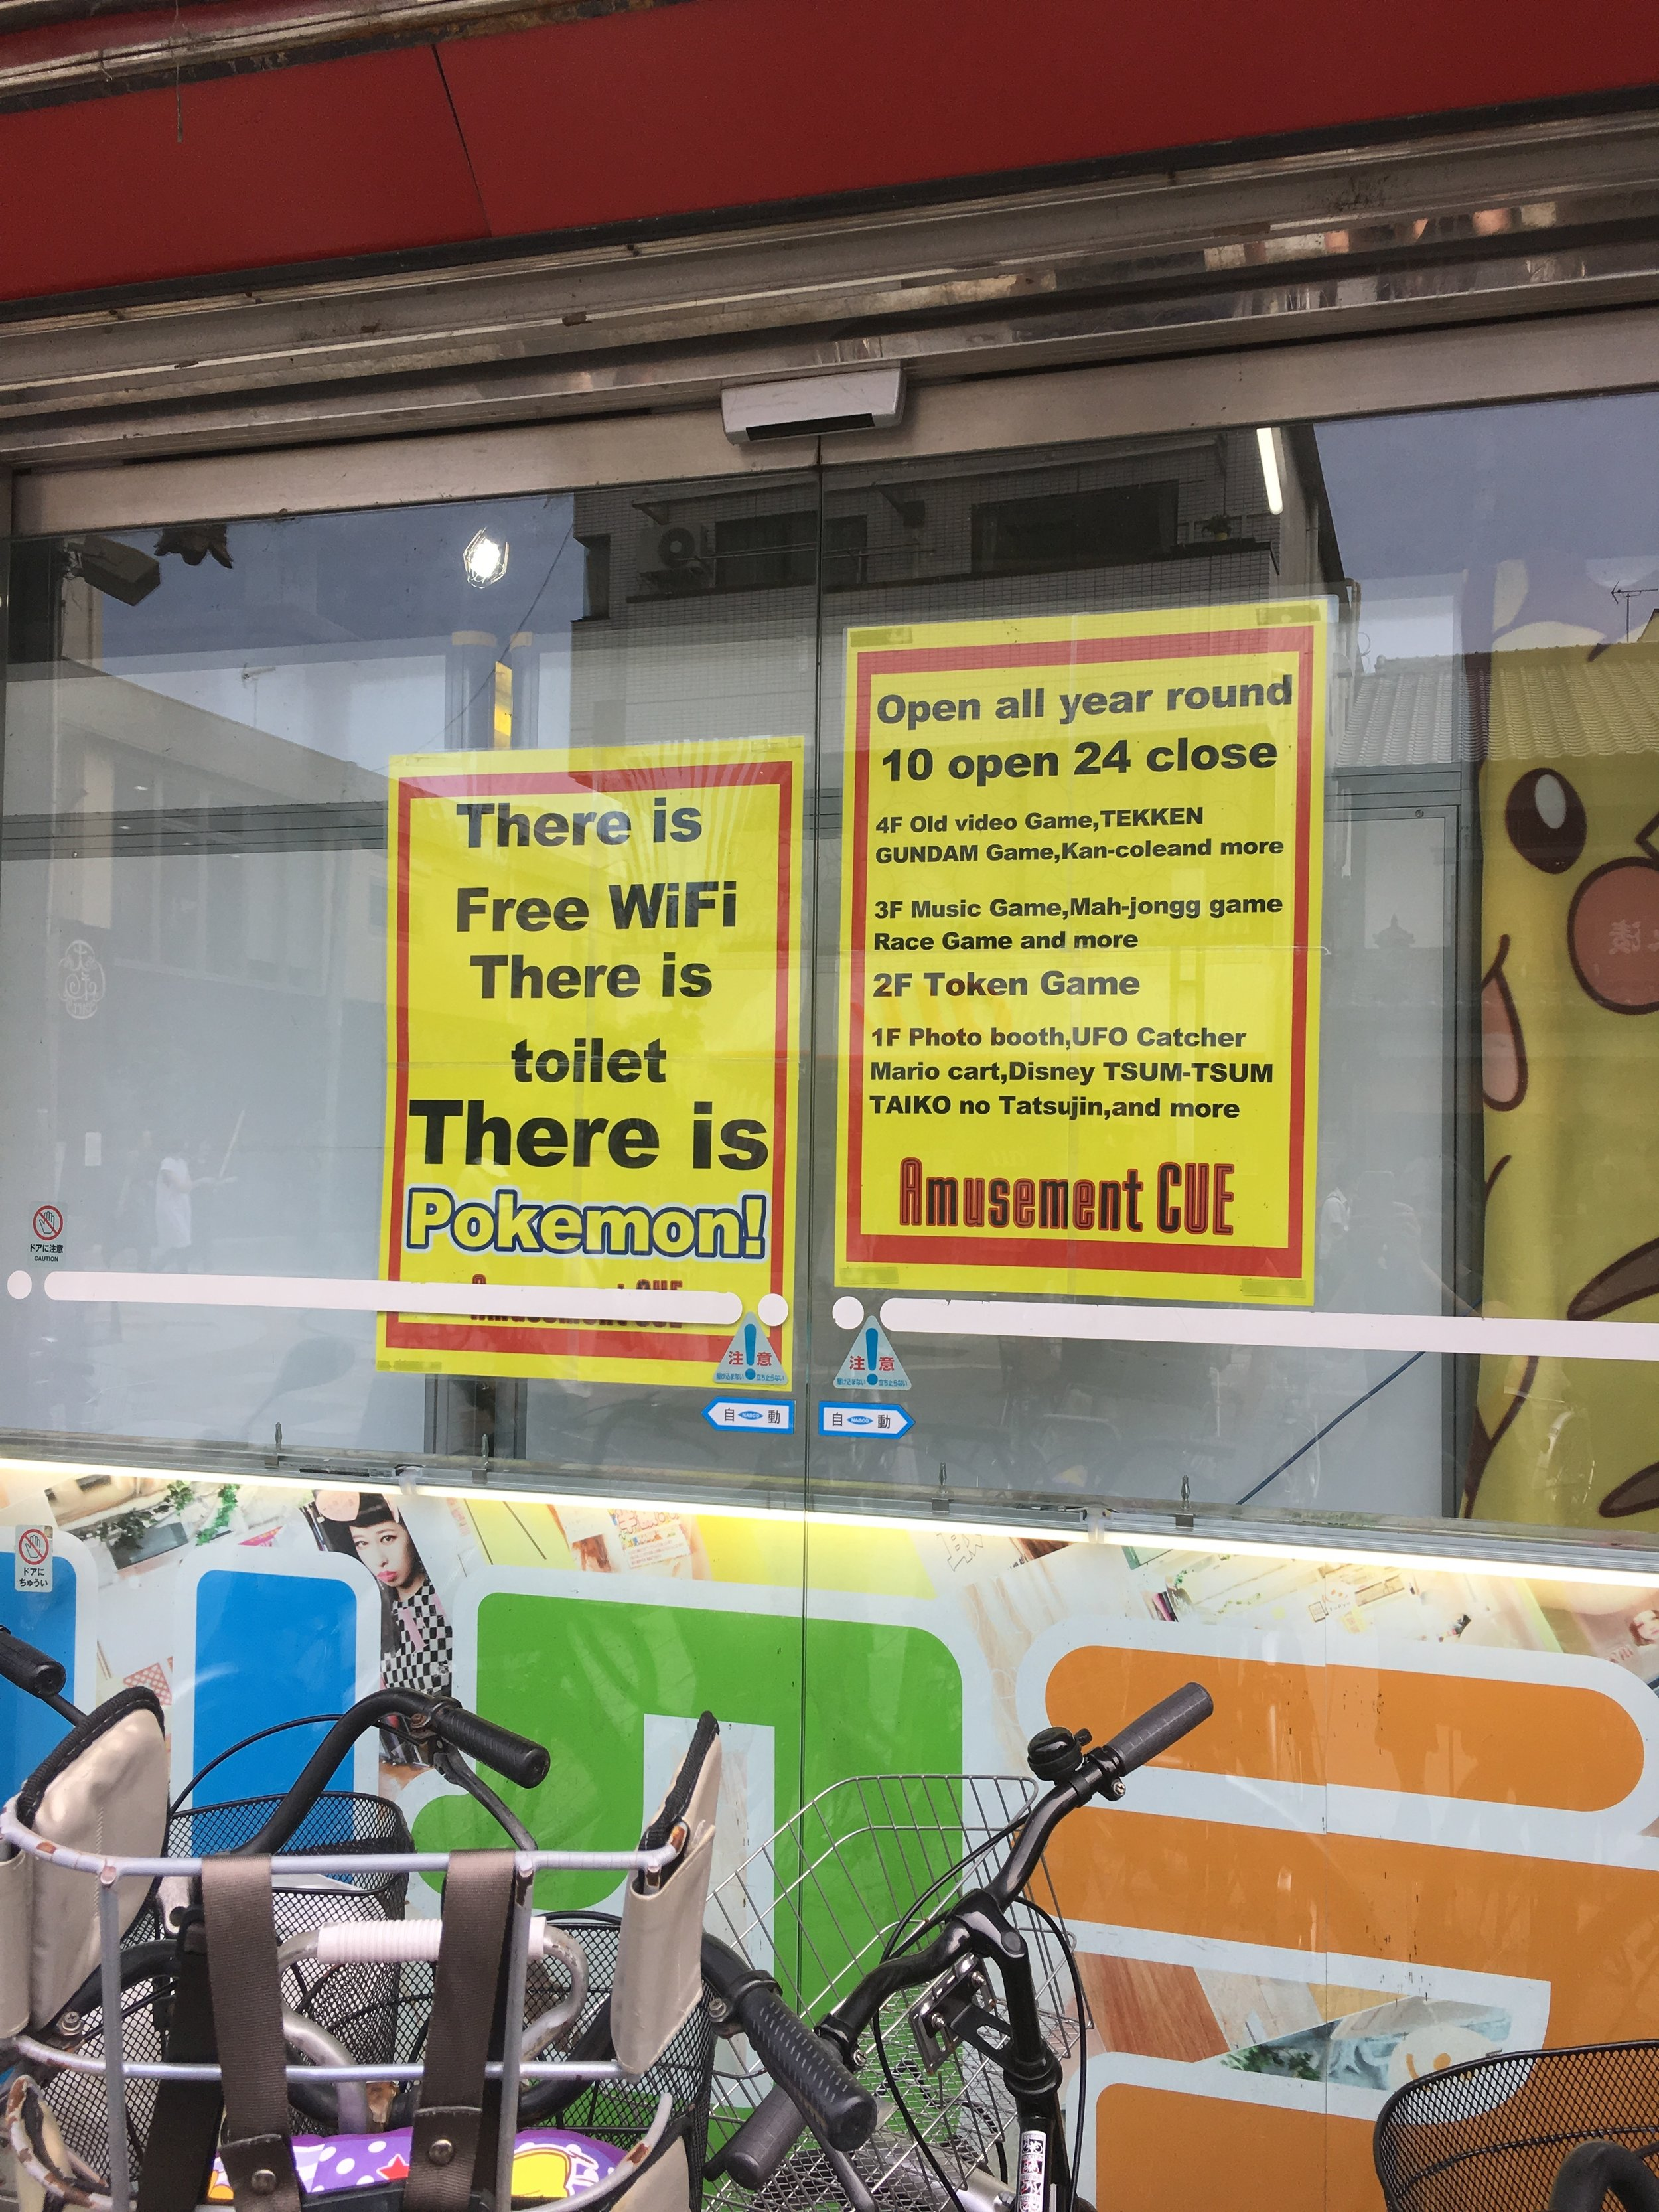 Speaking of toilets - I don't know how we resisted the urge to go in. I mean, they have toilets AND Pokemon!